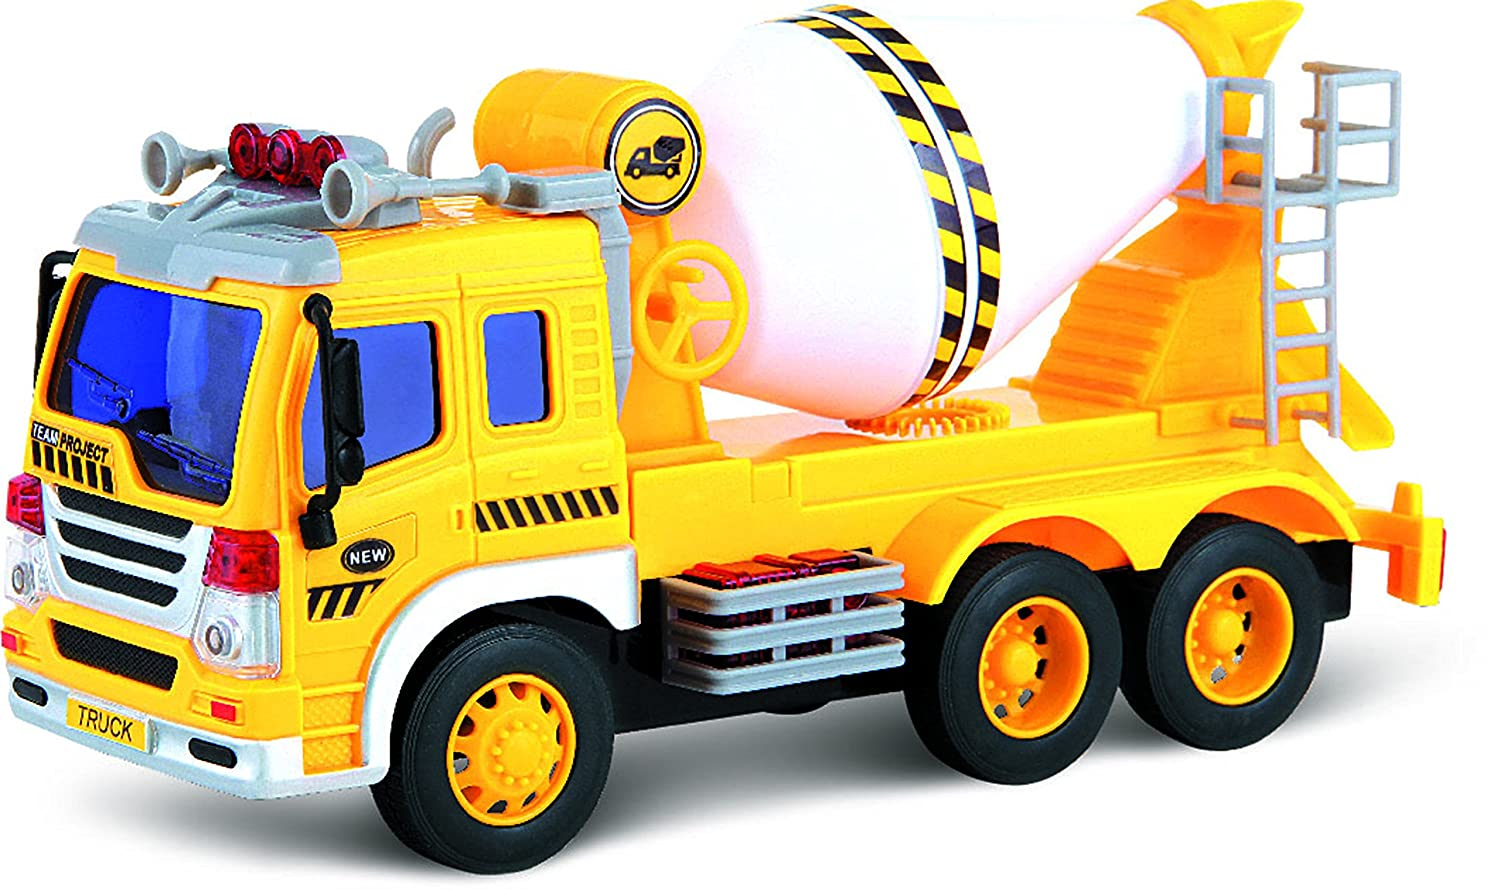 by ThinkGizmos Friction Powered Toy Cement Mixer Truck with Lights /& Sound TG640-C Push /& Go Friction Truck Toy for Boys /& Girls Aged 3 Trademark Protected